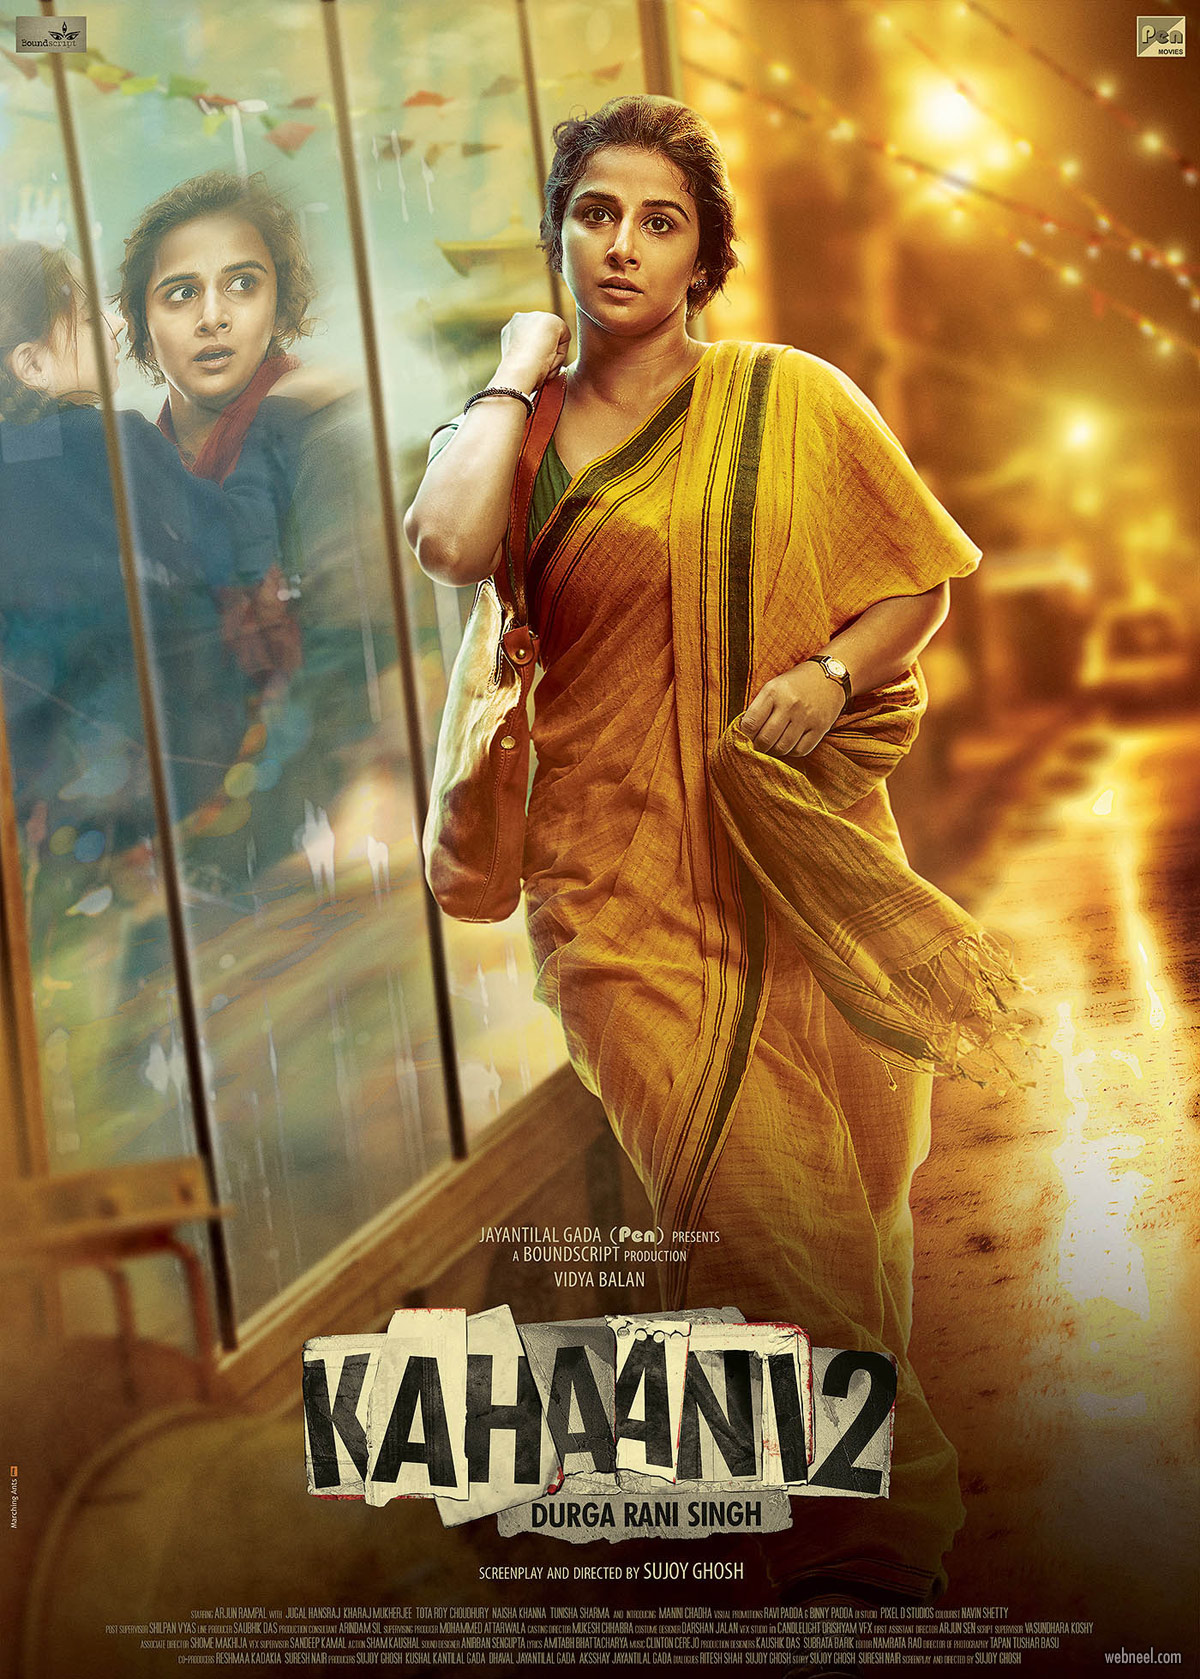 movie poster design kahaani2 bollywood hindi by prathoolnt